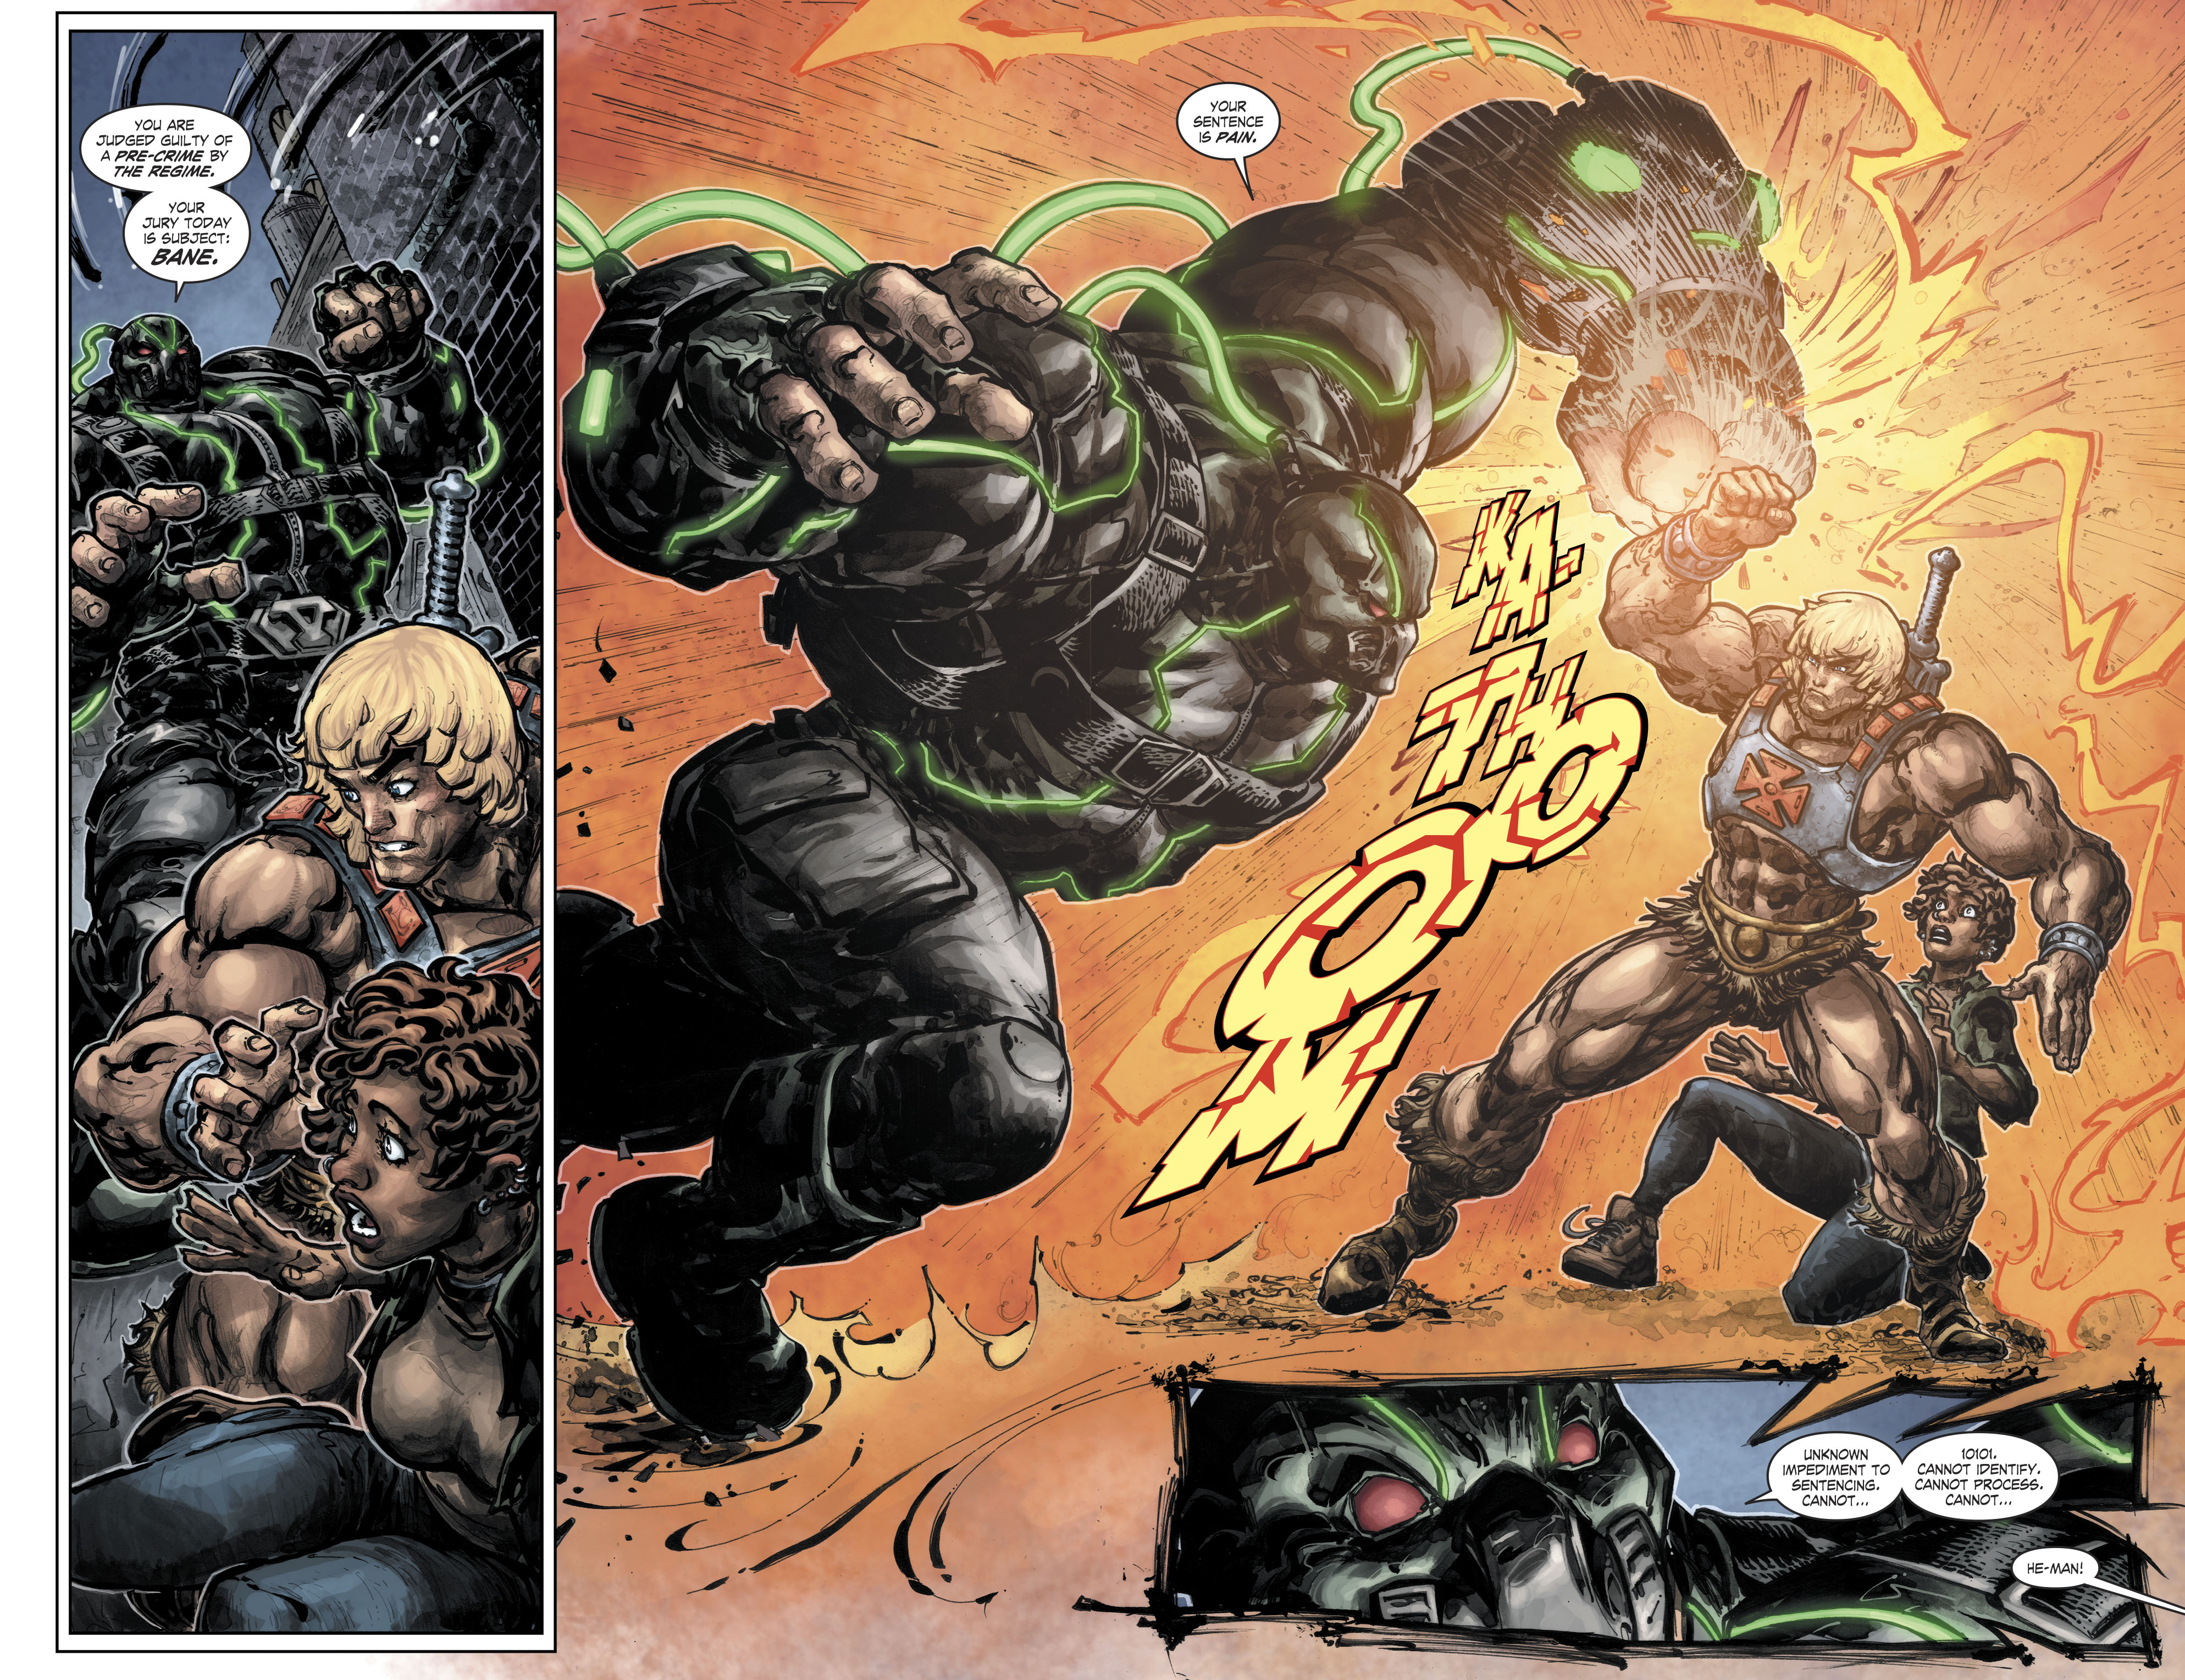 INJUSTICE VS THE MASTERS OF THE UNIVERSE #2 OF 6